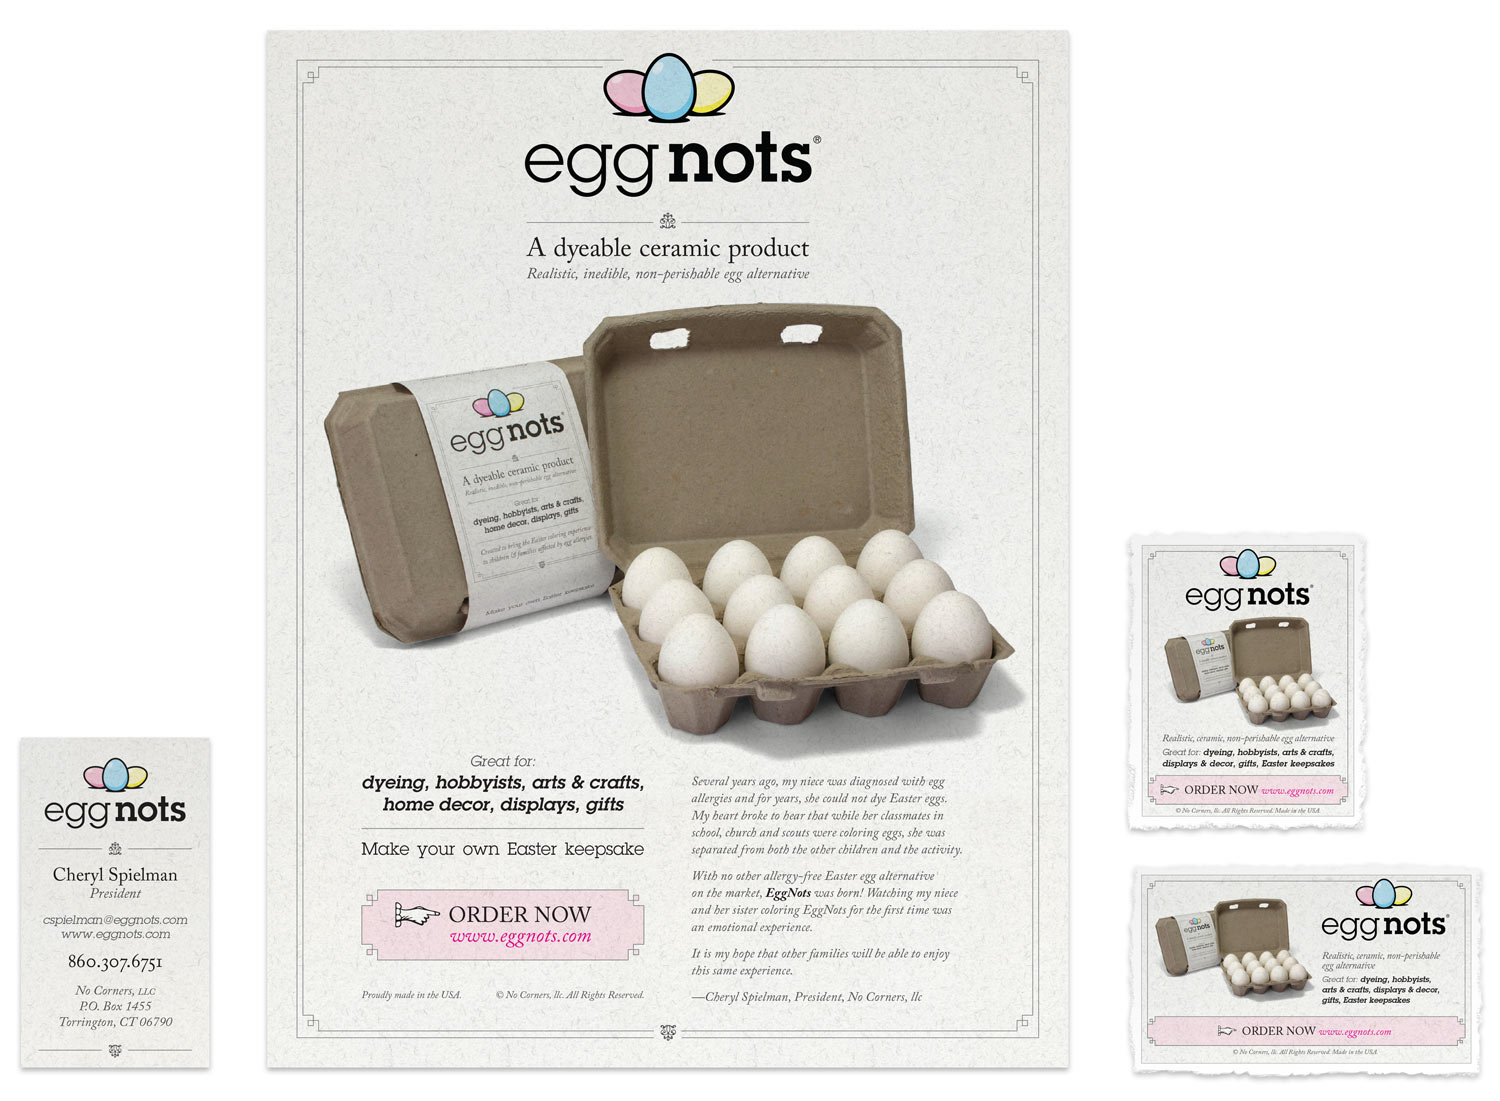 Print design for EggNots collateral